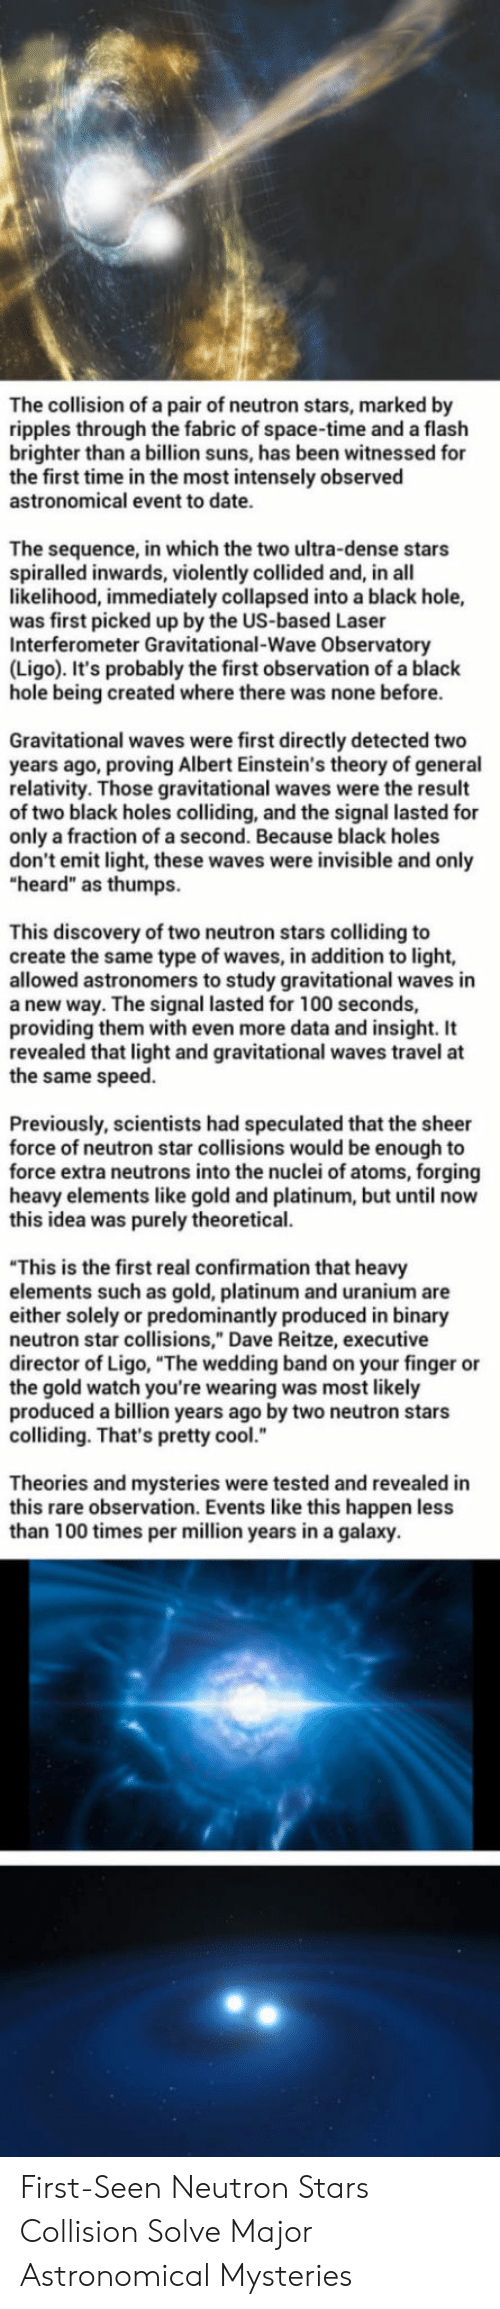 """relativity: The collision of a pair of neutron stars, marked by  ripples through the fabric of space-time and a flaslh  brighter than a billion suns, has been witnessed for  the first time in the most intensely observed  astronomical event to date.  The sequence, in which the two ultra-dense stars  spiralled inwards, violently collided and, in all  likelihood, immediately collapsed into a black hole,  was first picked up by the US-based Laser  Interferometer Gravitational-Wave Observatory  (Ligo). It's probably the first observation of a black  hole being created where there was none before.  Gravitational waves were first directly detected two  years ago, proving Albert Einstein's theory of general  relativity. Those gravitational waves were the result  of two black holes colliding, and the signal lasted for  only a fraction of a second. Because black holes  don't emit light, these waves were invisible and only  """"heard"""" as thumps  This discovery of two neutron stars colliding to  create the same type of waves, in addition to light,  allowed astronomers to study gravitational waves in  a new way. The signal lasted for 100 seconds,  providing them with even more data and insight. It  revealed that light and gravitational waves travel at  the same speed.  Previously, scientists had speculated that the sheer  force of neutron star collisions would be enough to  force extra neutrons into the nuclei of atoms, forging  heavy elements like gold and platinum, but until now  this idea was purely theoretical.  """"This is the first real confirmation that heavy  elements such as gold, platinum and uranium are  either solely or predominantly produced in binary  neutron star collisions,"""" Dave Reitze, executive  director of Ligo, """"The wedding band on your finger or  the gold watch you're wearing was most likely  produced a billion years ago by two neutron stars  colliding. That's pretty cool.  Theories and mysteries were tested and revealed in  this rare observation. Events like thi"""